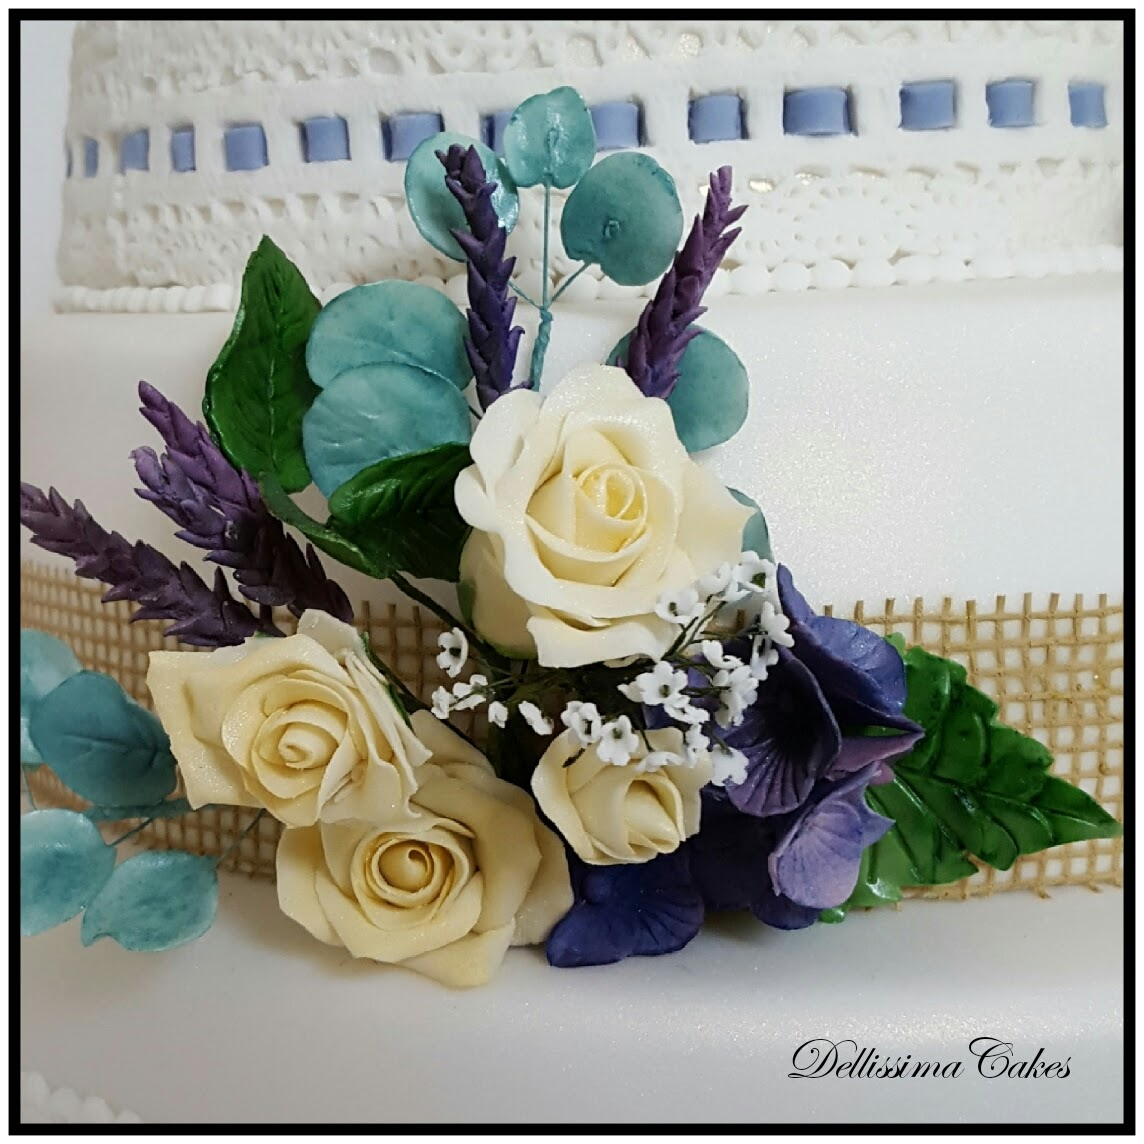 Pinecone Wedding Cake flowers 3.jpg